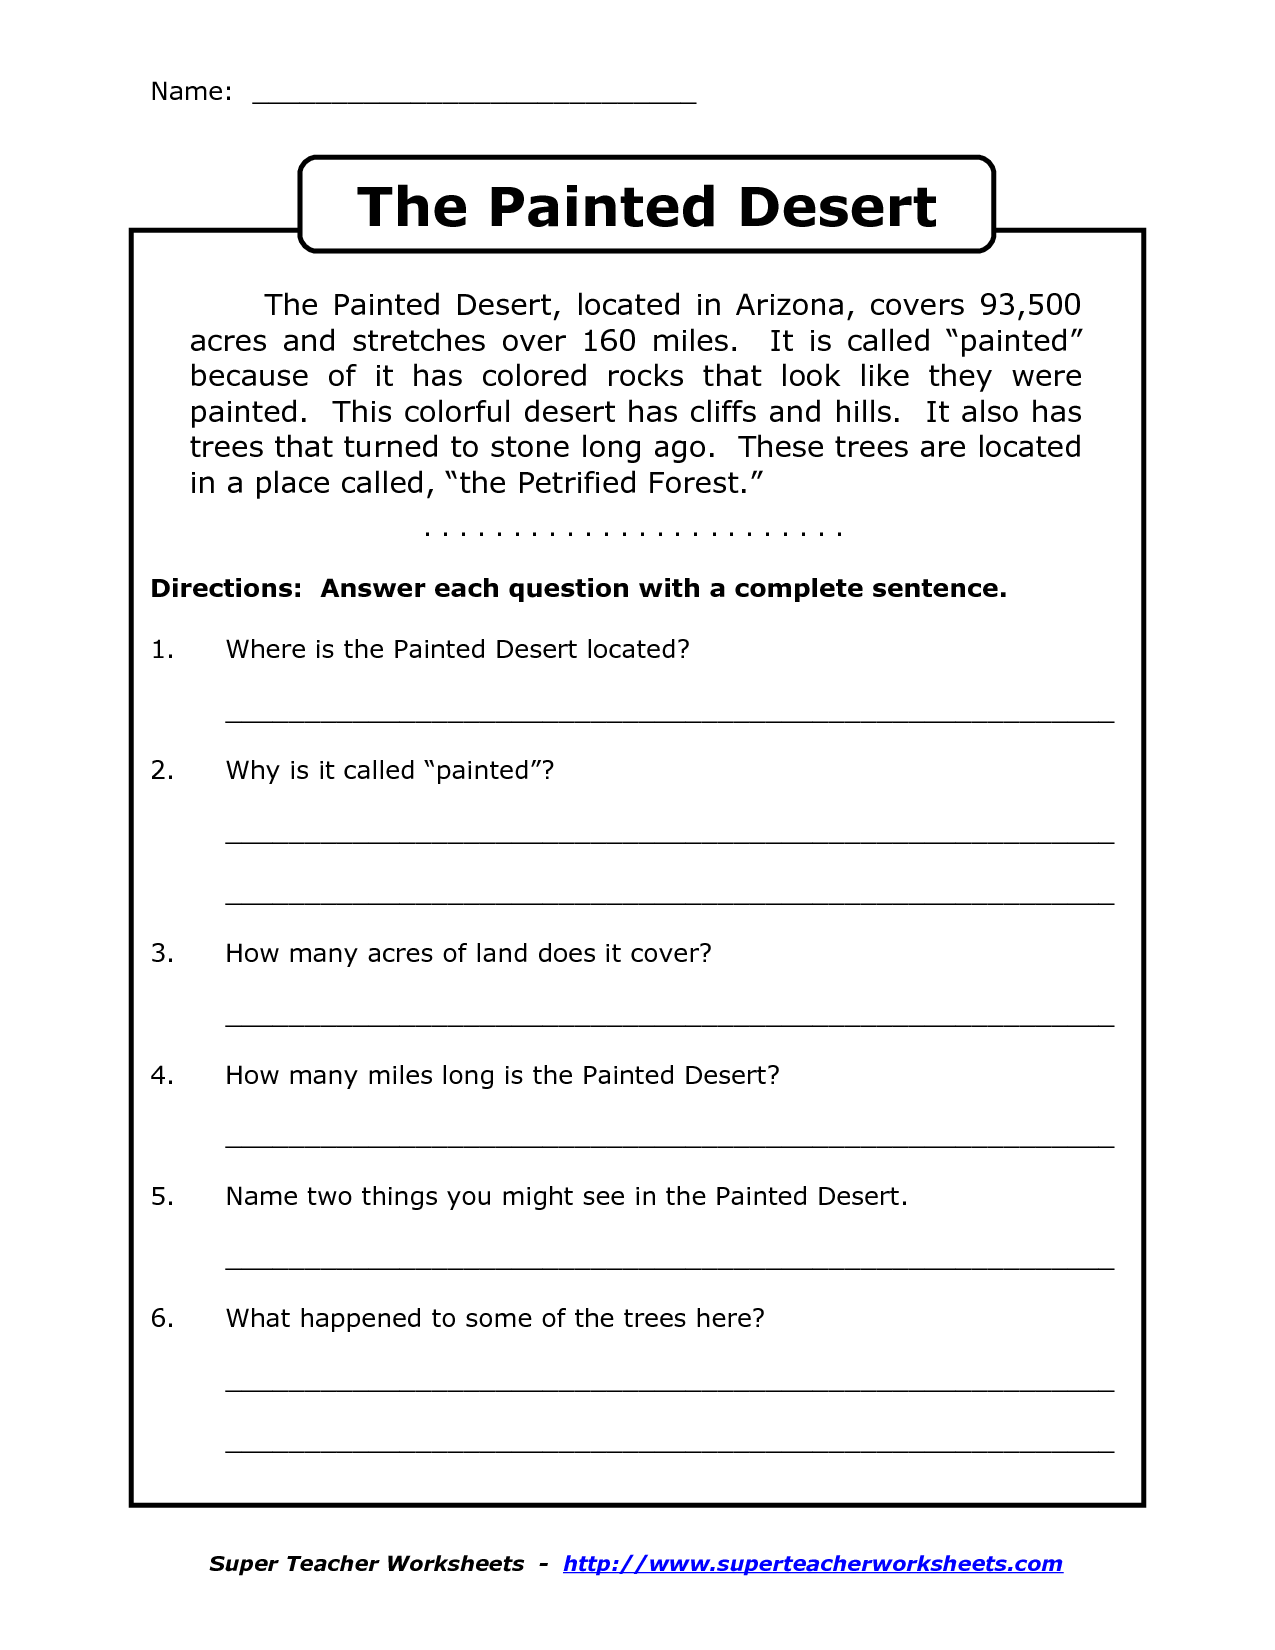 Worksheets Free Second Grade Reading Comprehension Worksheets reading worksheets for 2nd grade hd wallpapers download free tumblr